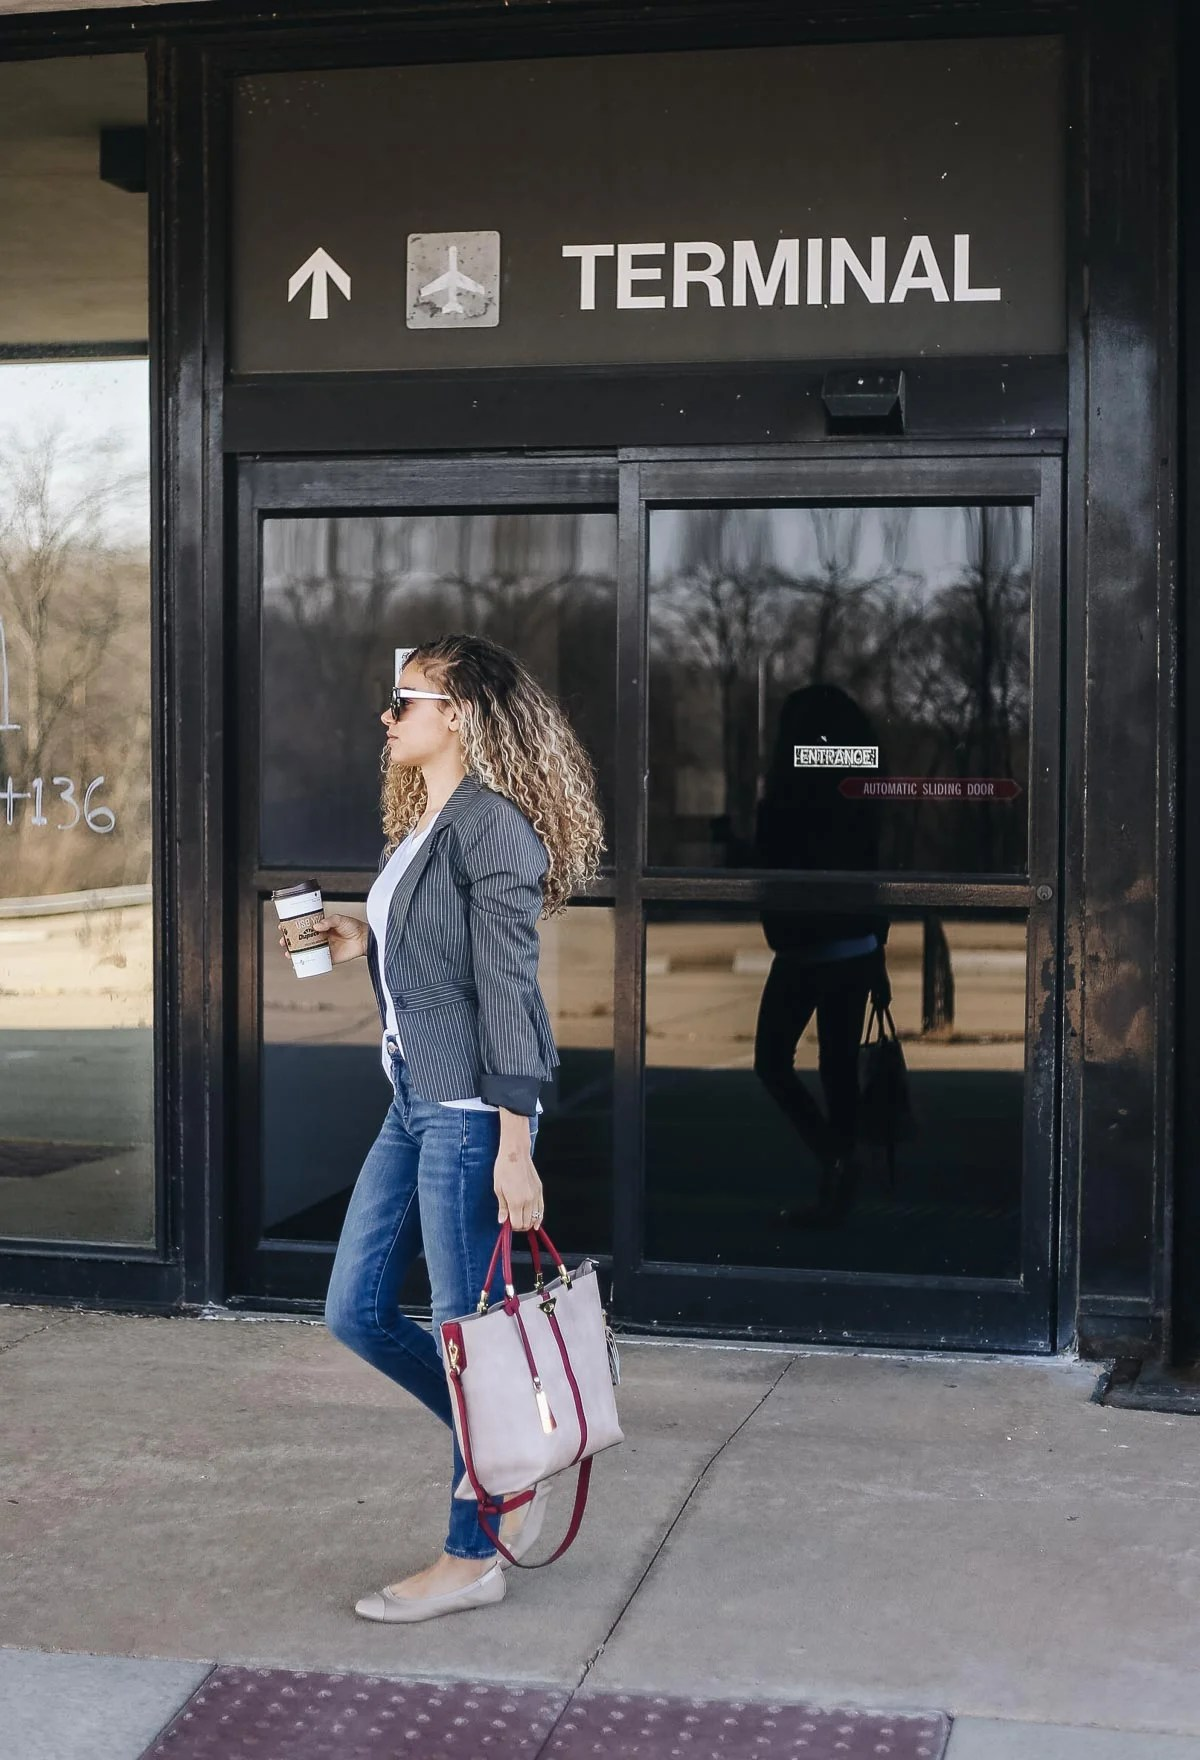 Are you a classy traveler that wants to look chic at the airport? Check out these travel outfits and accessories for your stylish traveling outfits!